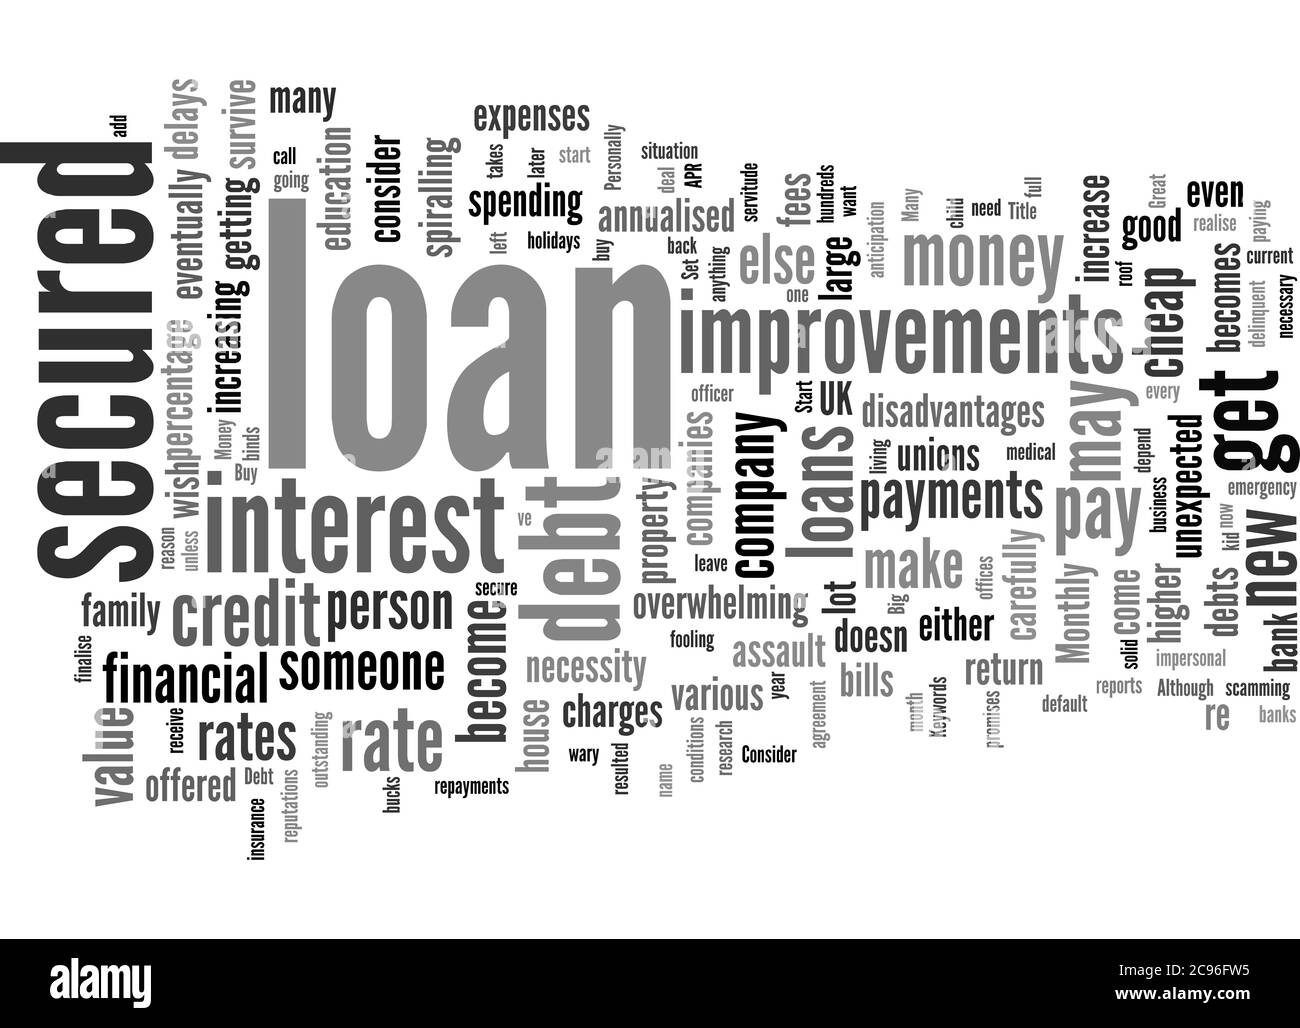 Word Cloud Summary of How To Save Money And Get A Great Secured Loan Article Stock Photo